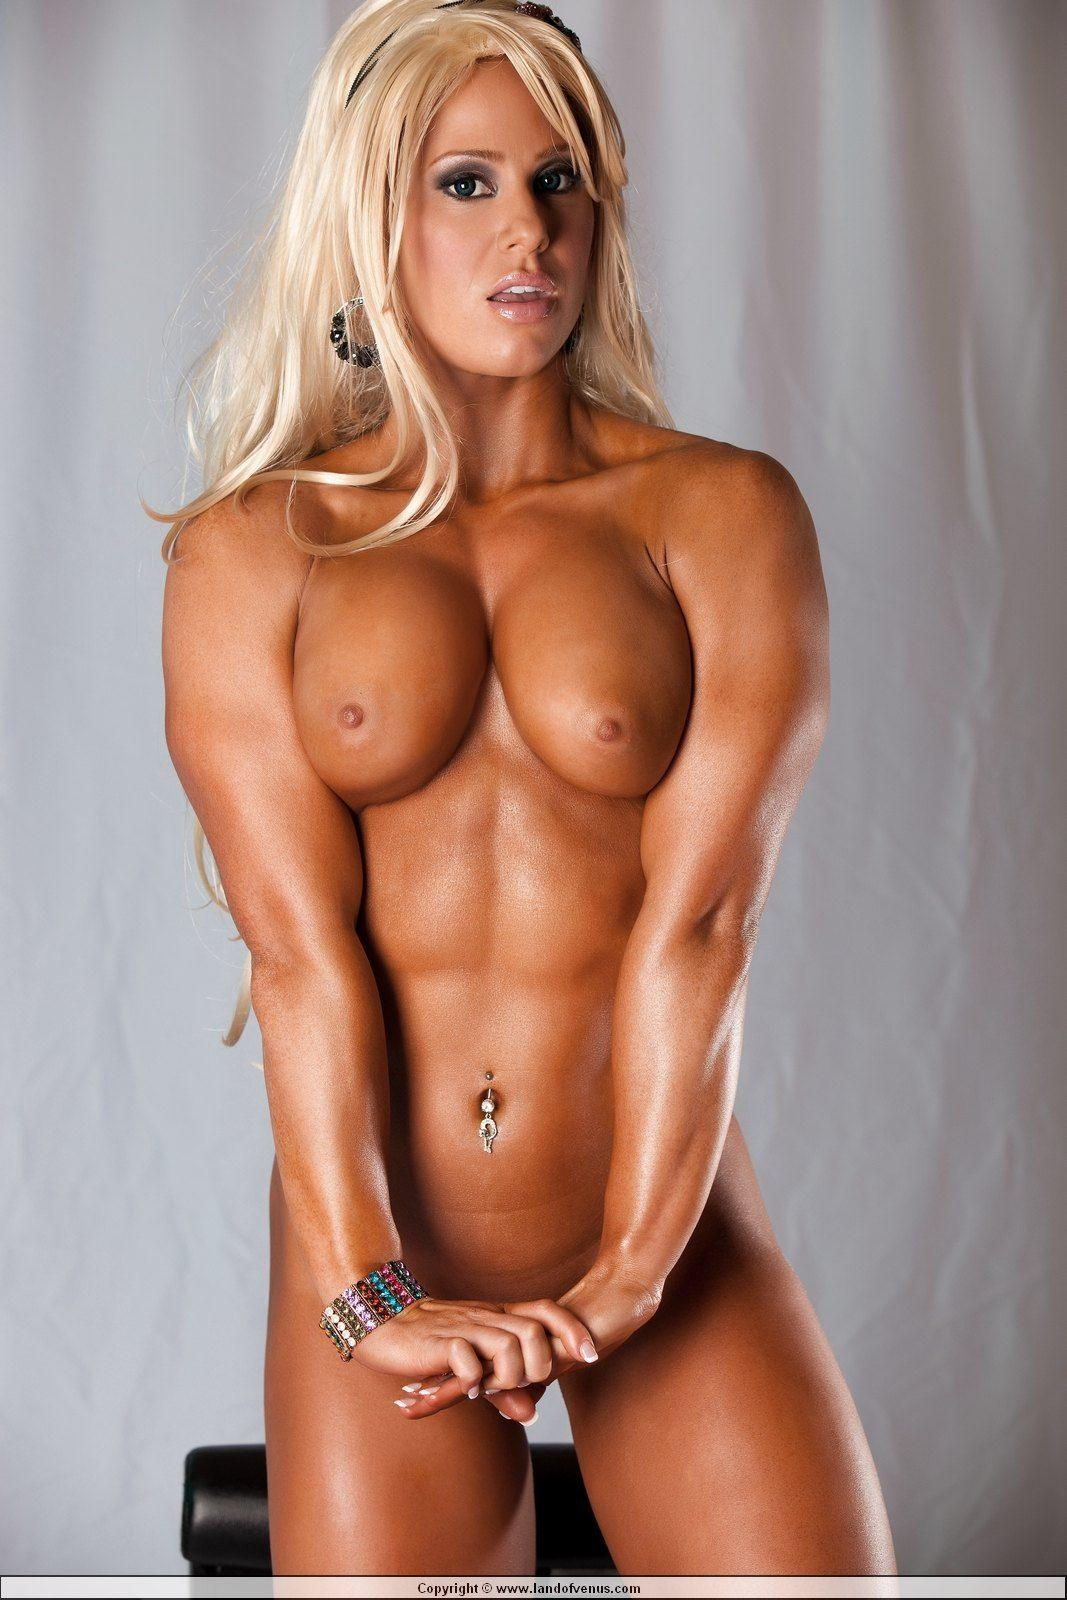 The nobility? galleries porn female muscle accept